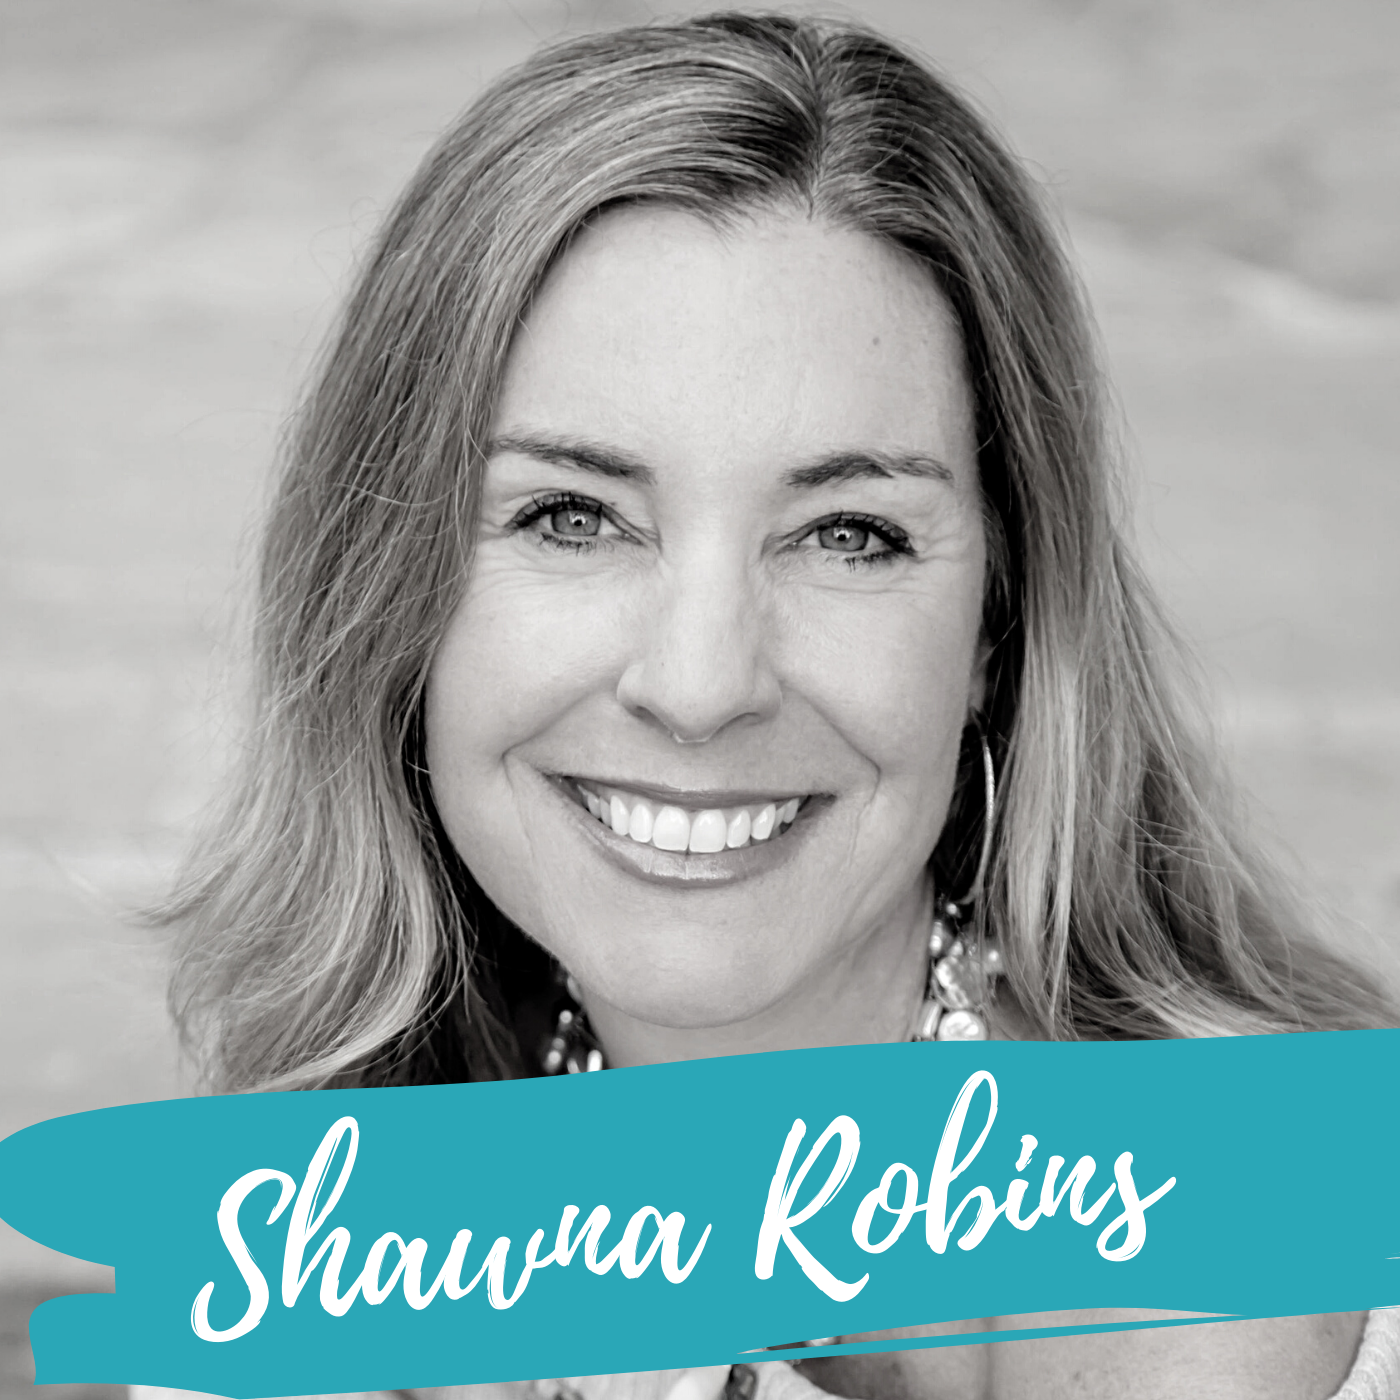 Quick & Easy Hacks for Your Best Night's Sleep- With Shawna Robins